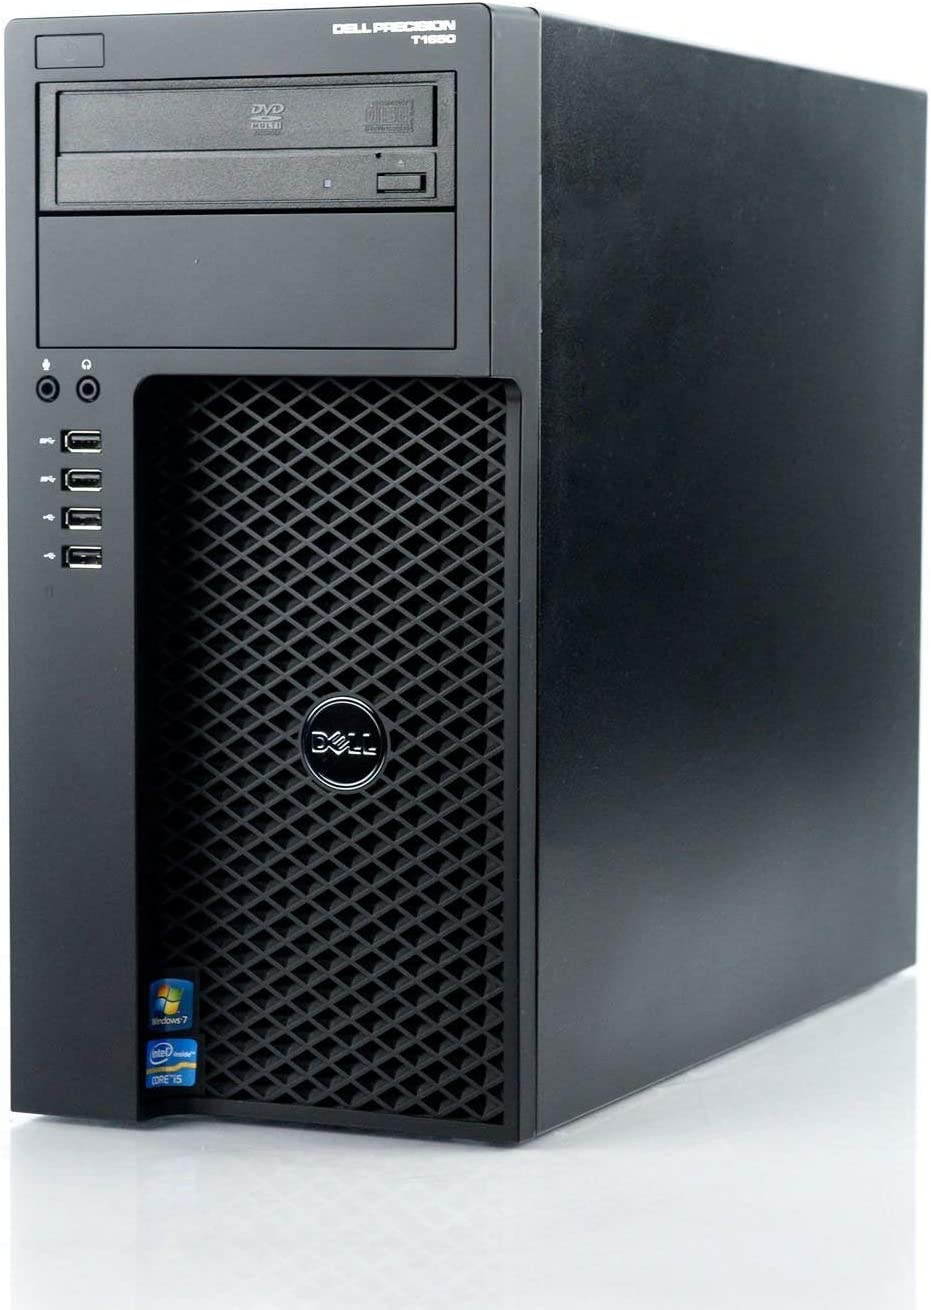 Dell Precision T1650 Tower Workstation Business Desktop Computer, Intel Quad-Core i7-3770 up to 3.90 GHz, 8GB RAM, 1TB HDD, DVD, WiFi, USB 3.0, Windows 10 Professional (Renewed)